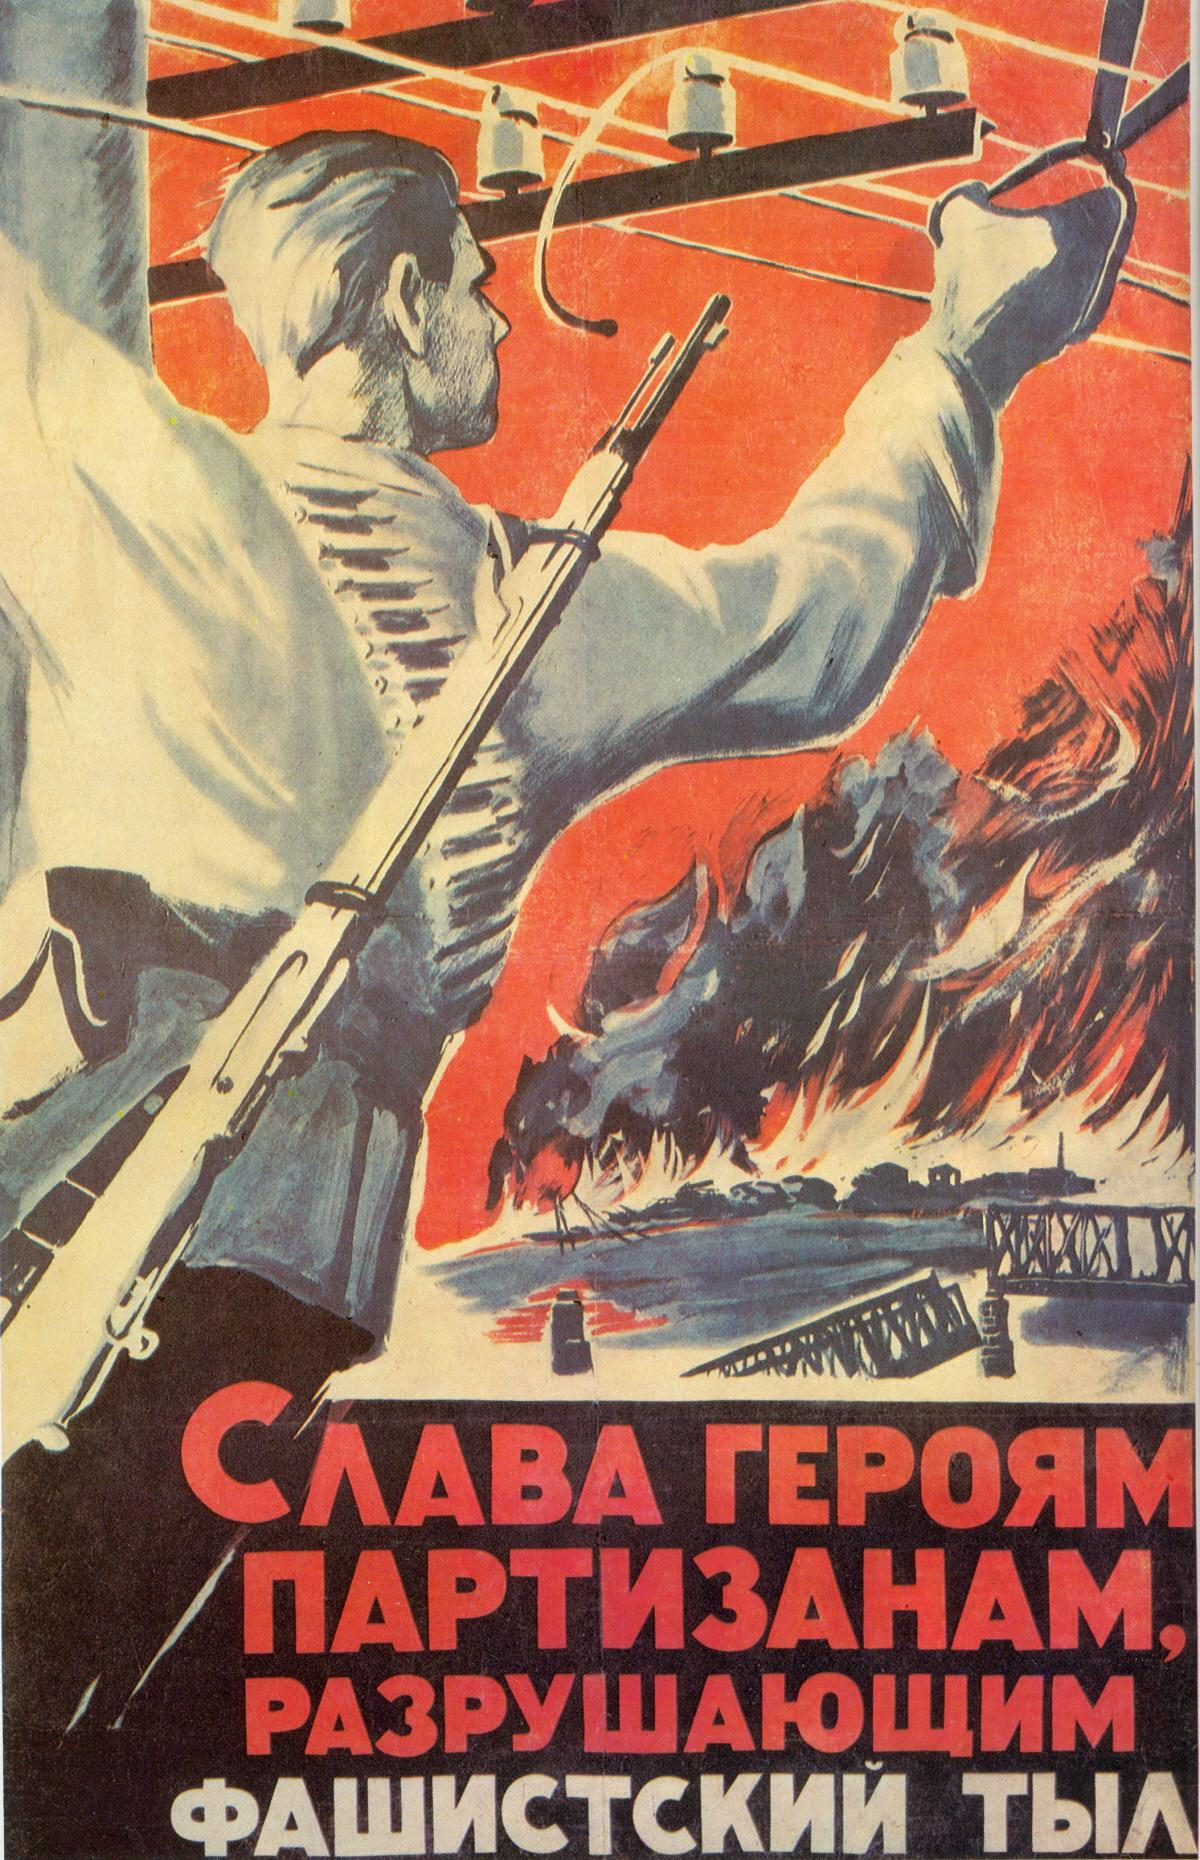 01 P P Gorely. Glory to the Hero Partisans, Weakening the Fascist Rear! 1941